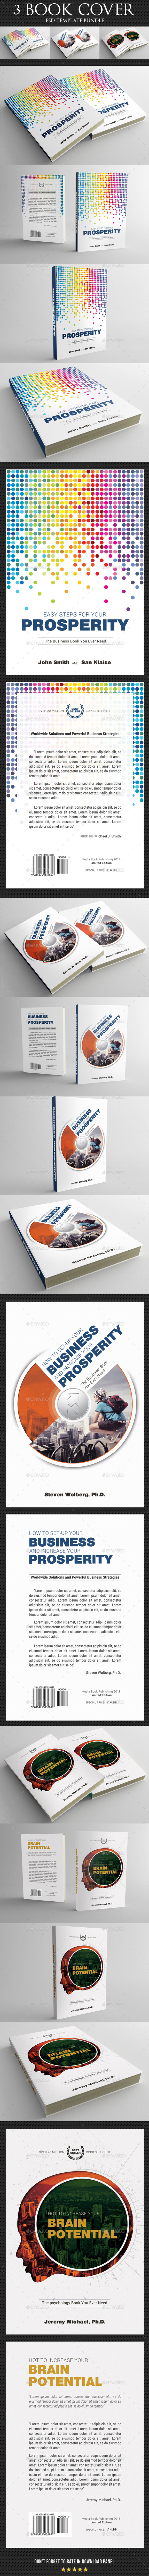 3 Corporate Book Cover Template Bundle V5 - Miscellaneous Print Templates